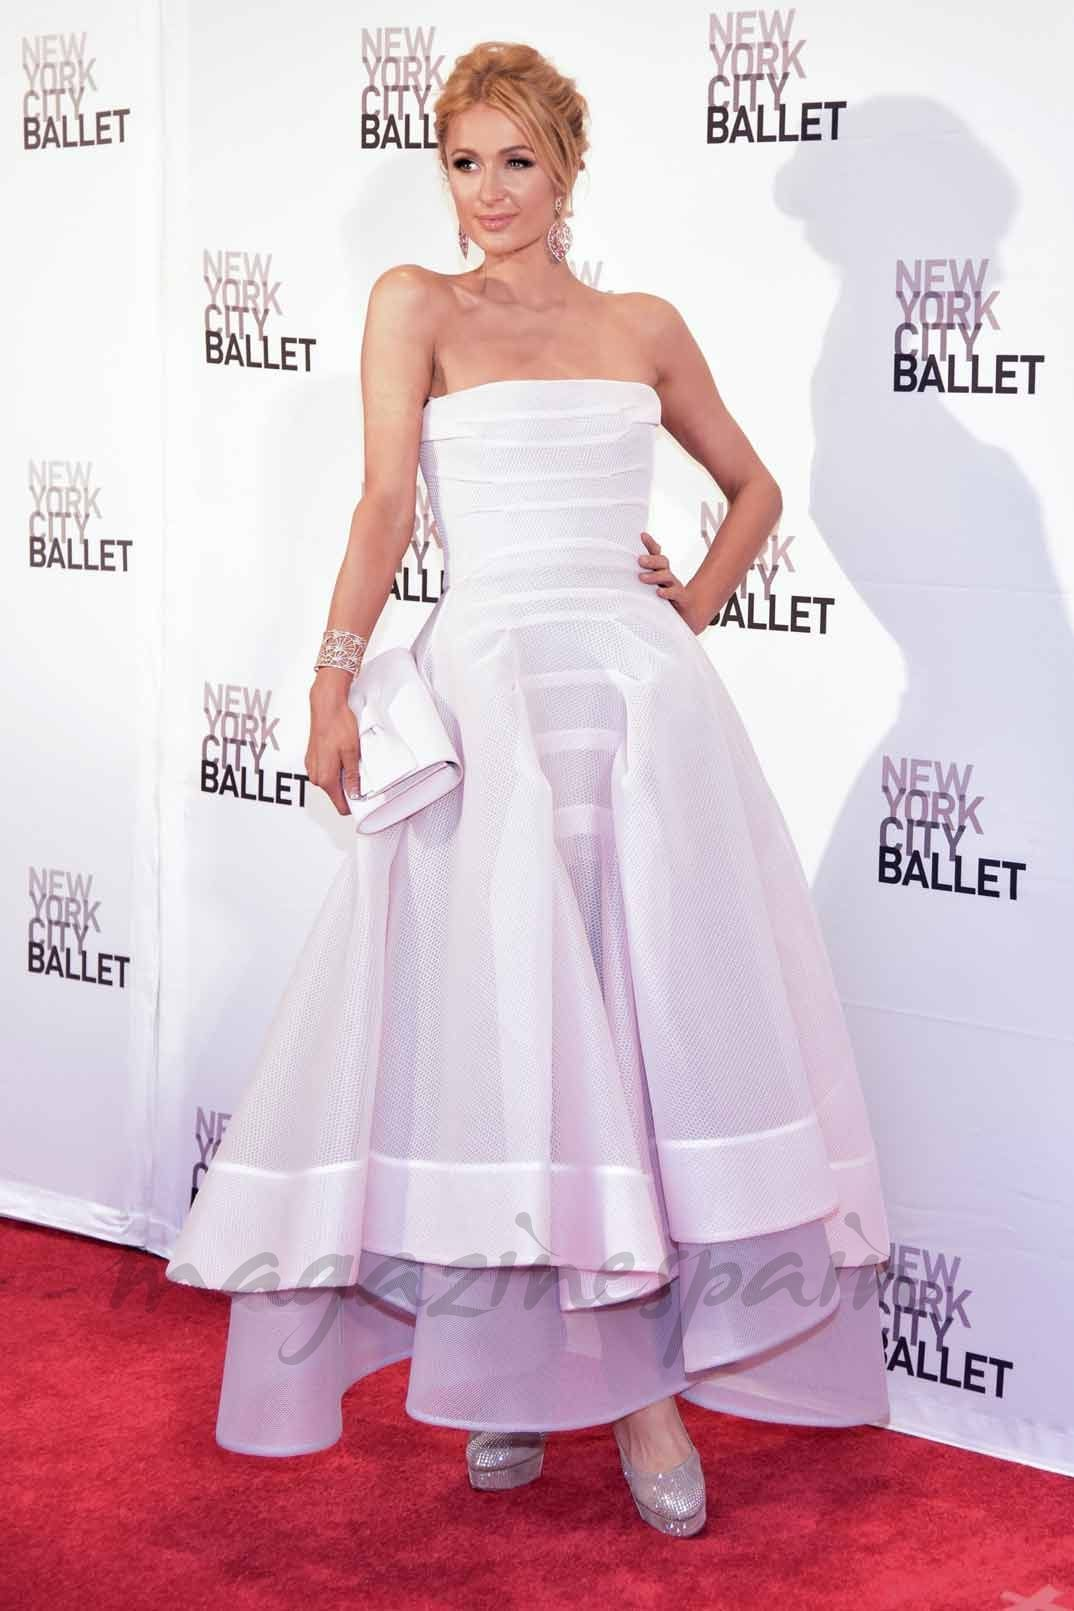 Paris Hilton en el New York City Ballet